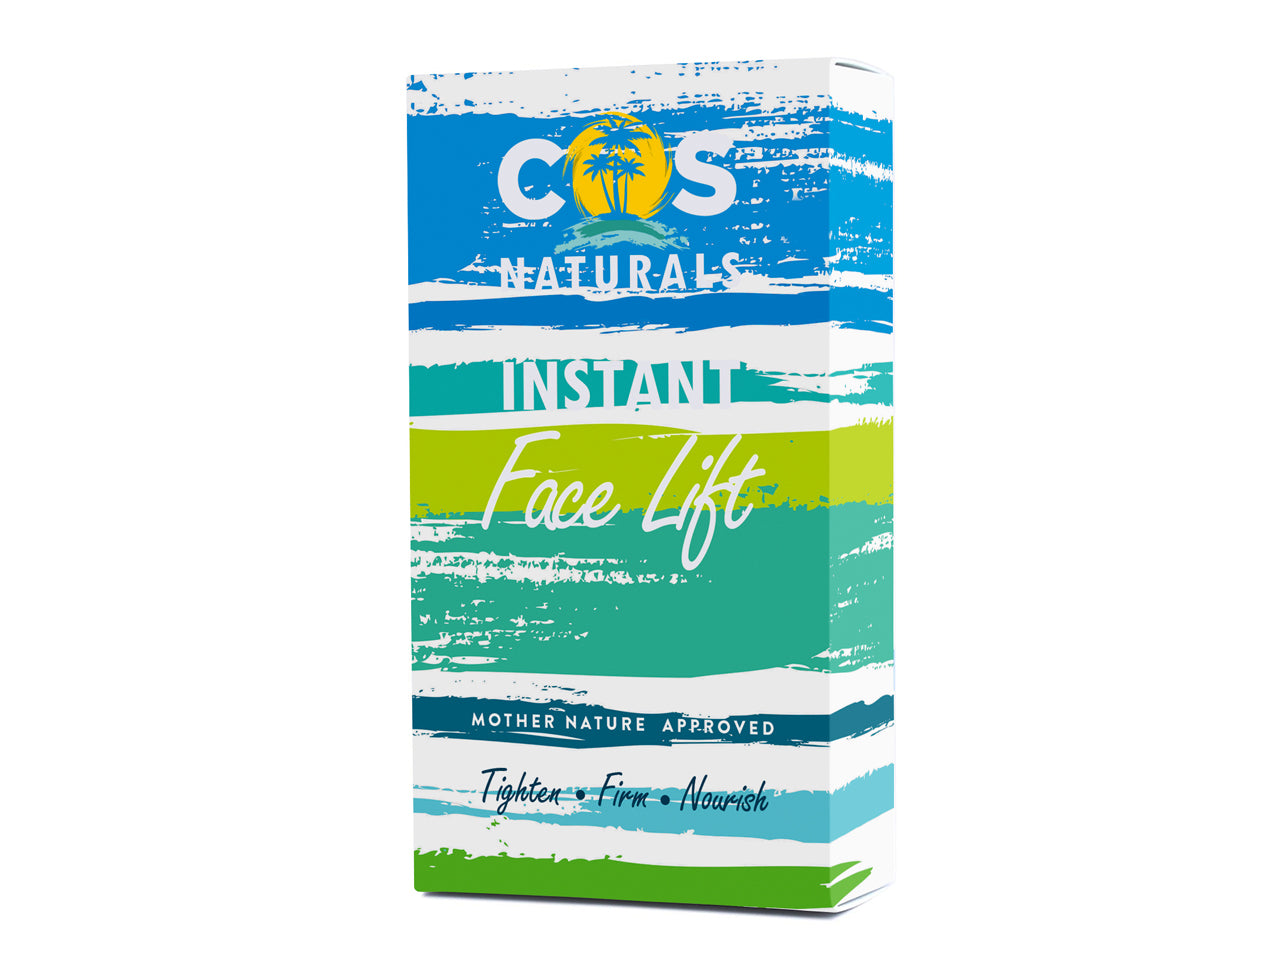 INSTANT FACE LIFT CREAM, 15ml / 0.5 fl oz